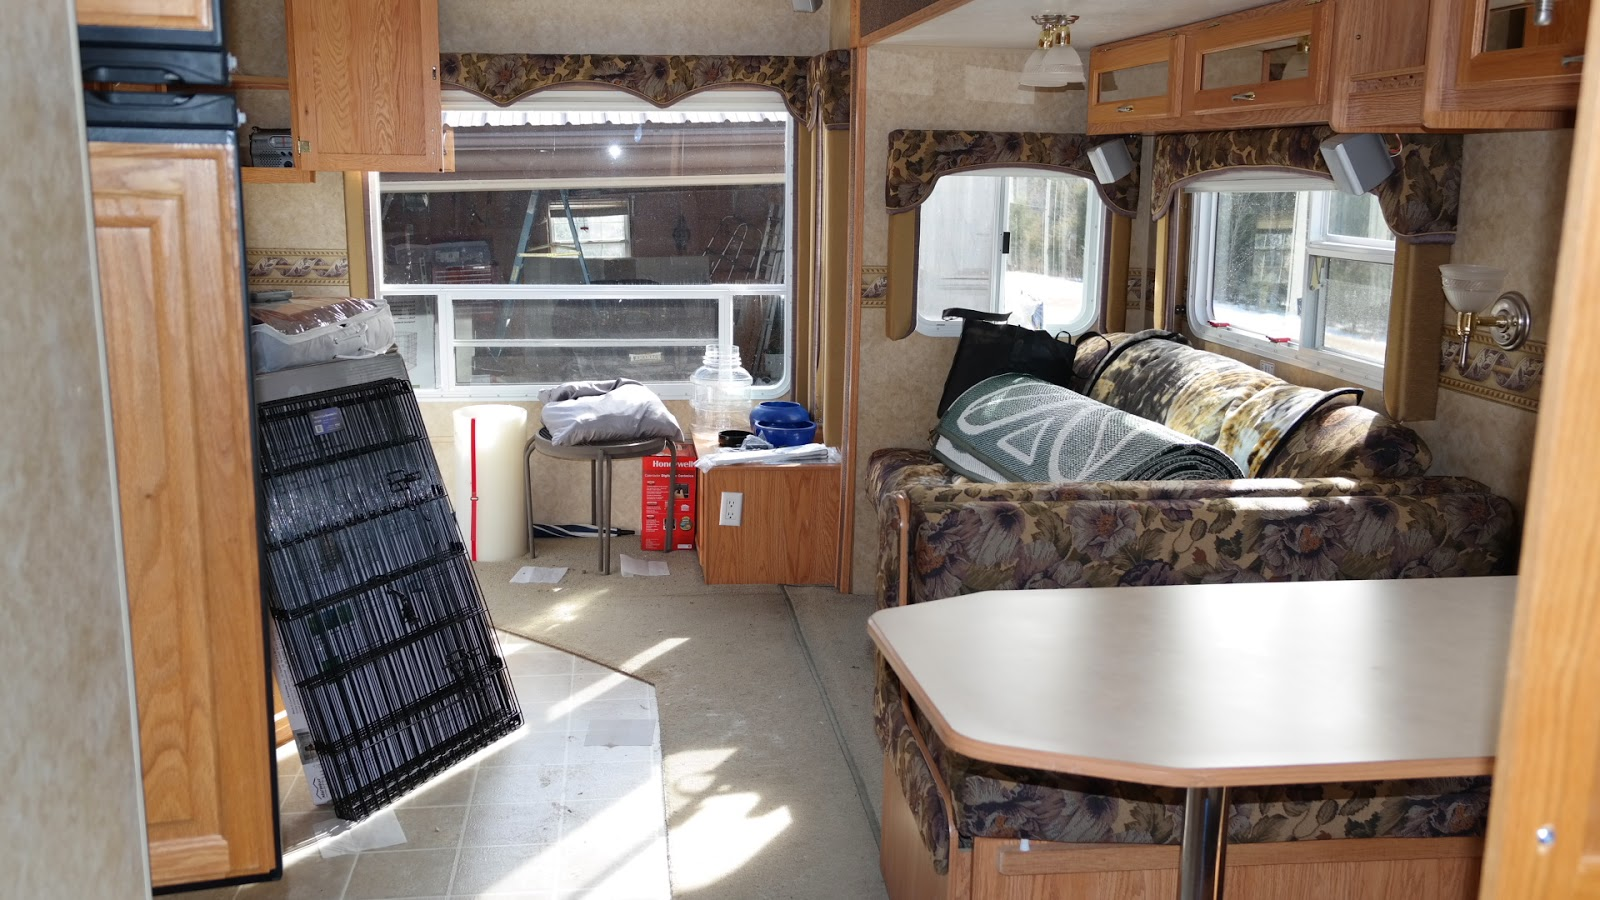 Getting the Camper Ready for Spring